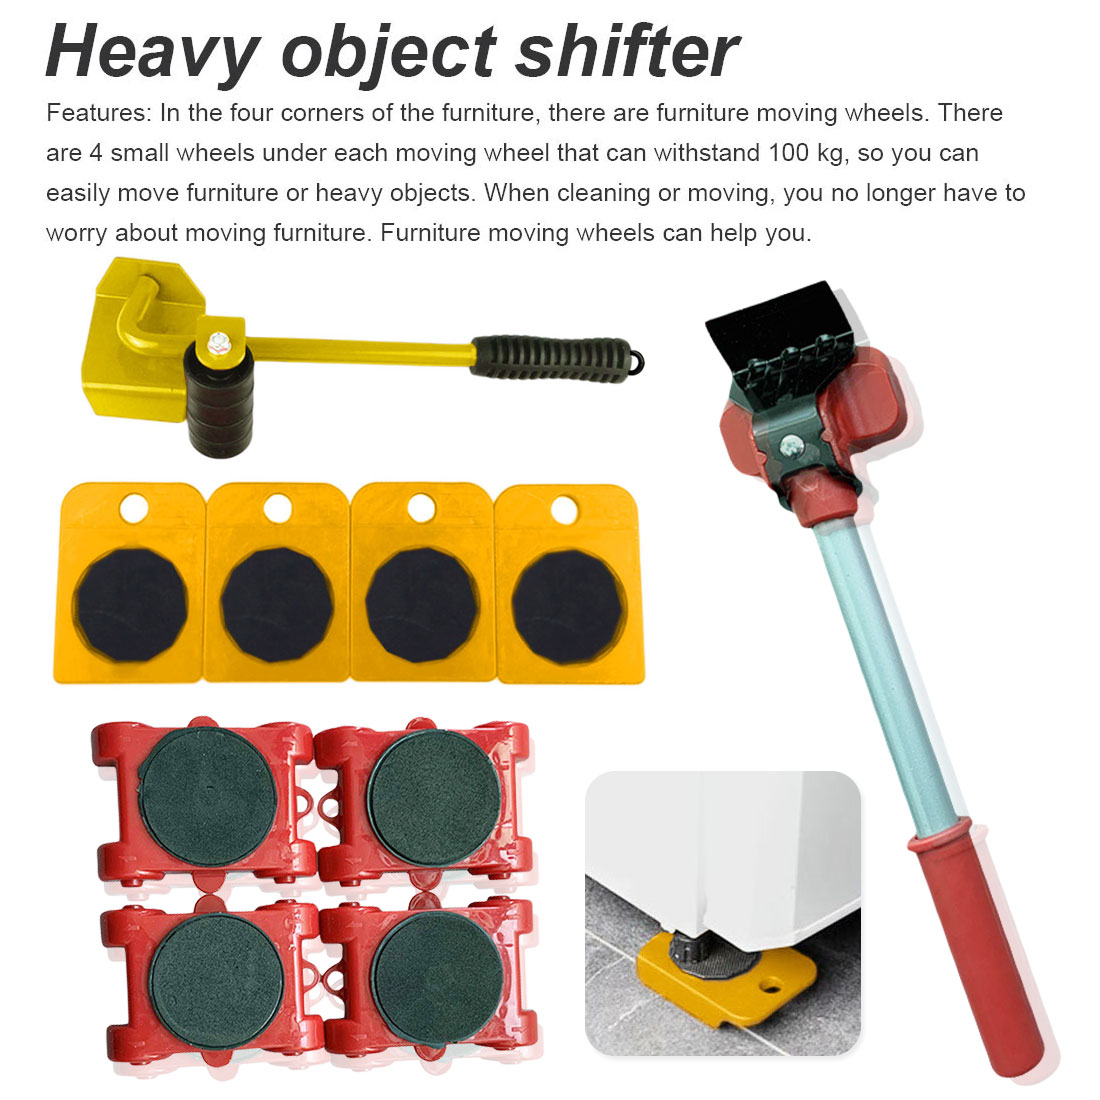 Home Trolley Lift And Move Slides Kit Easily System For Heavy Furniture 4 PC Rollers & 1PC Furniture Lifter Mover Transport Set